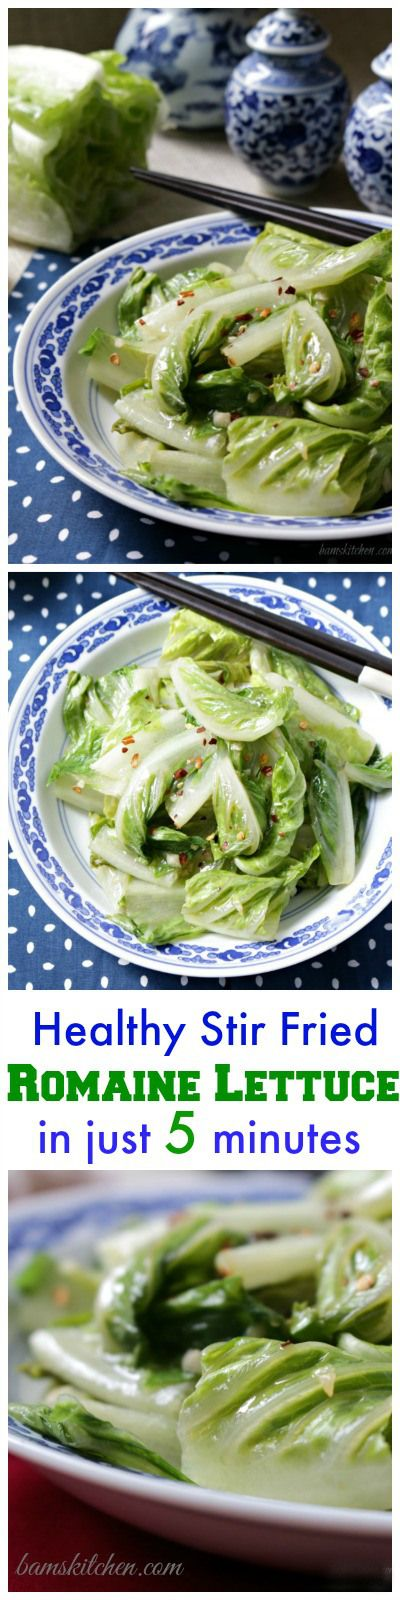 Healthy Stir Fried Romaine Lettuce / GLUTEN-FREE/ VEGAN/ DIABETIC FRIENDLY/ CARDIAC FRIENDLY/ QUICK and EASY/ http://bamskitchen.com